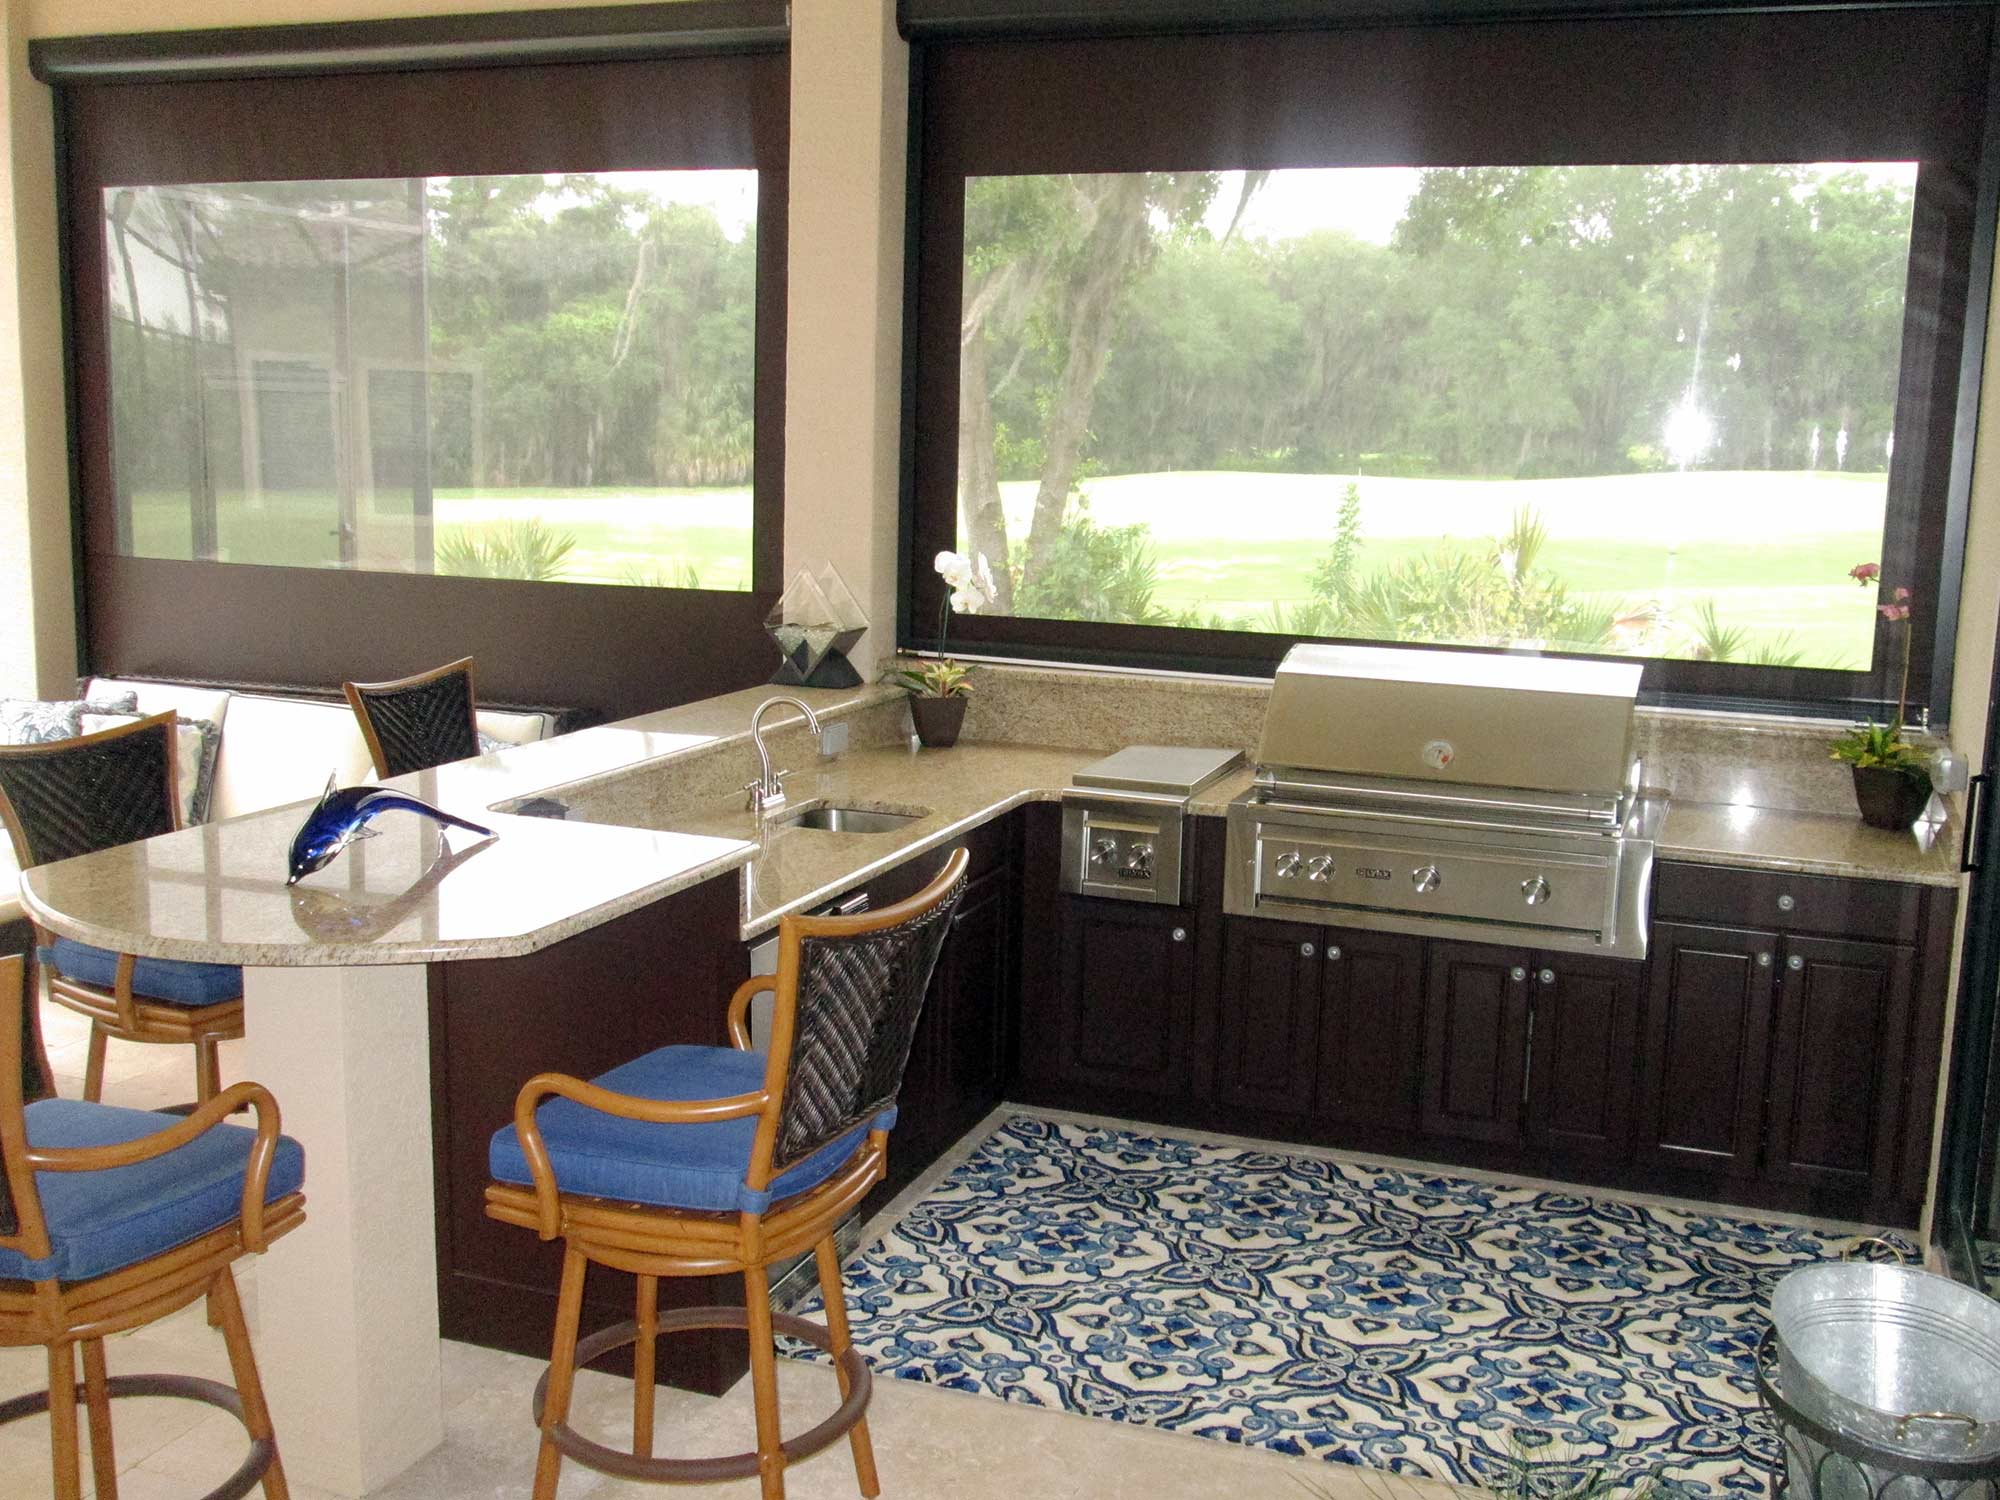 Outdoor Kitchen Cabinets More Quality Outdoor Kitchen Cabinets - Outdoor kitchens tampa